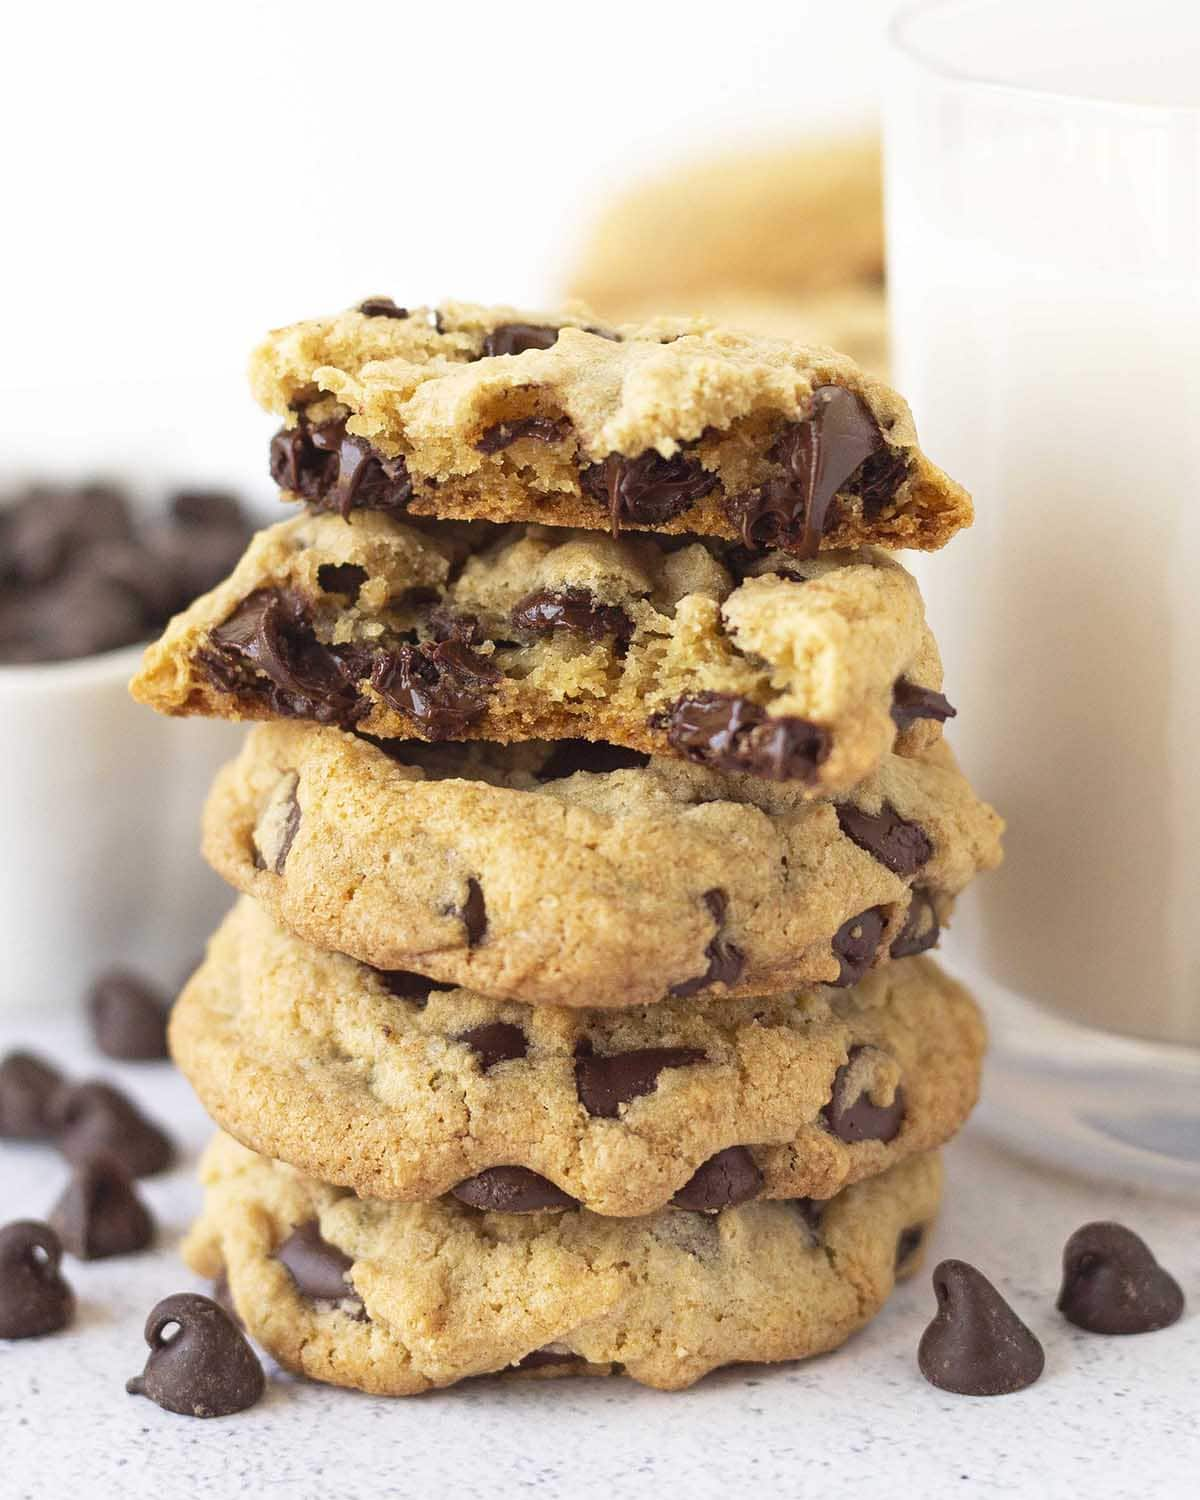 A stack of four chocolate chip cookies, the cookie on top is split in half to show the inner soft, gooey texture.